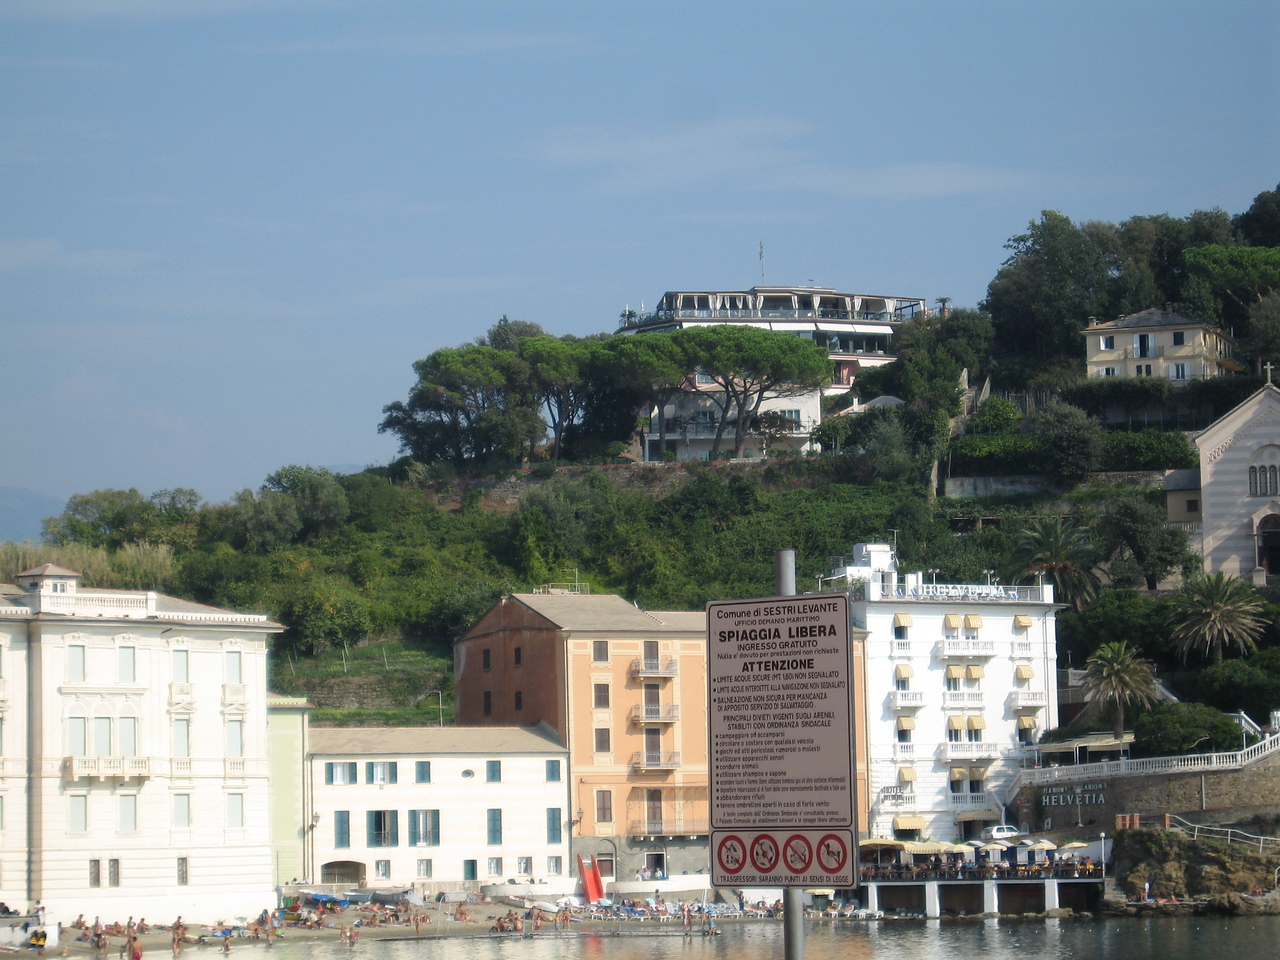 Hotel Vis a' Vis as view from the Bay of Silence in Sestri